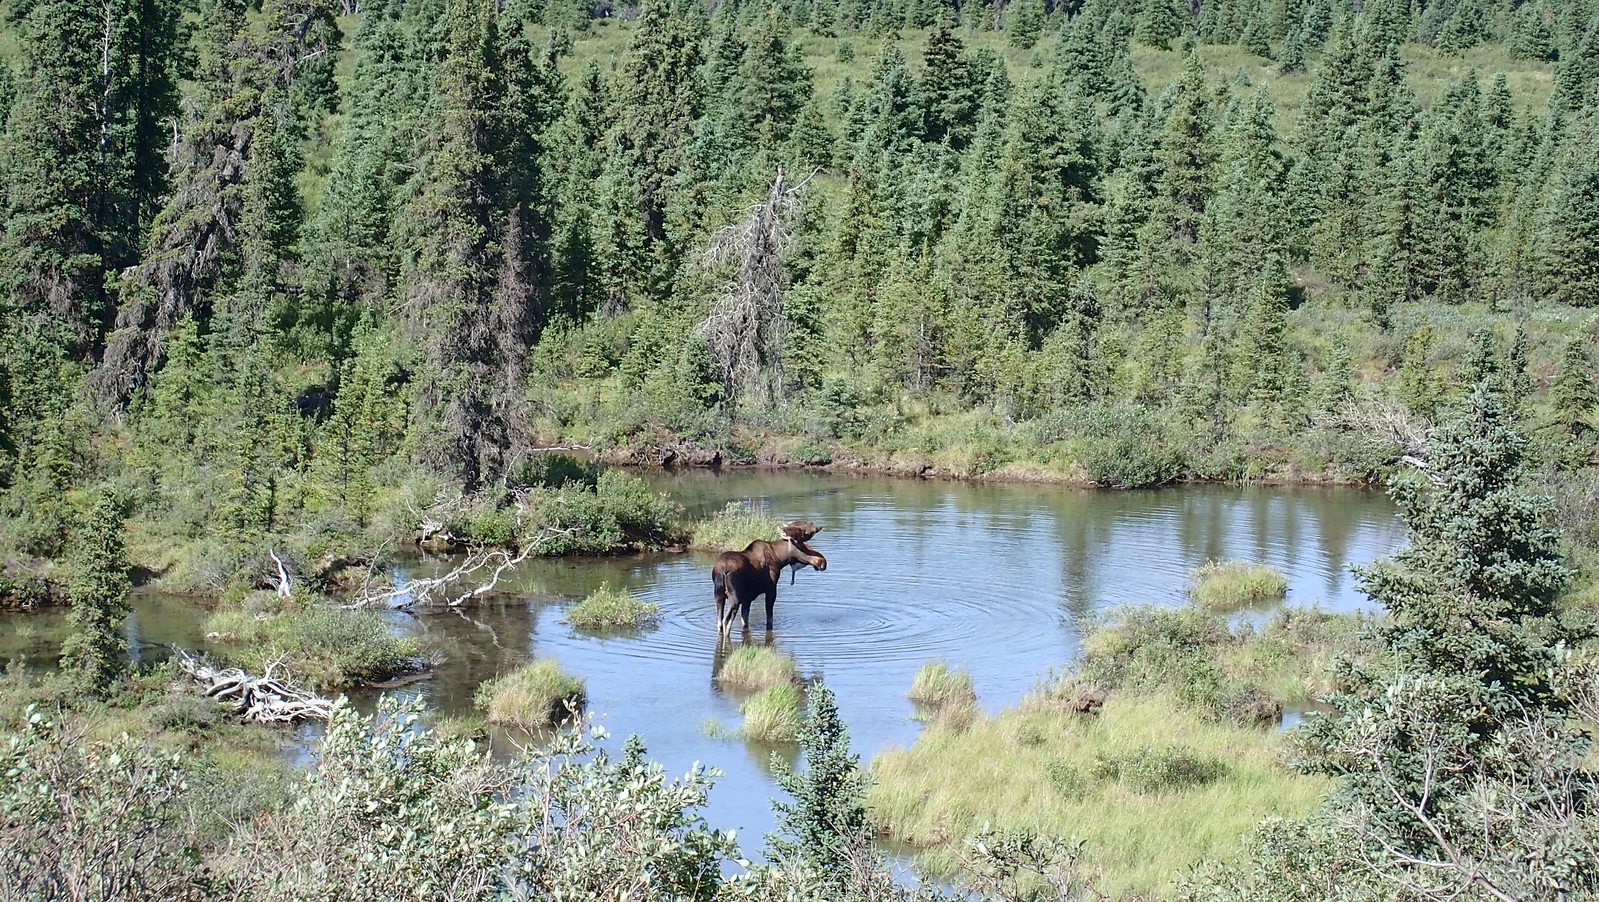 Bull moose and owl